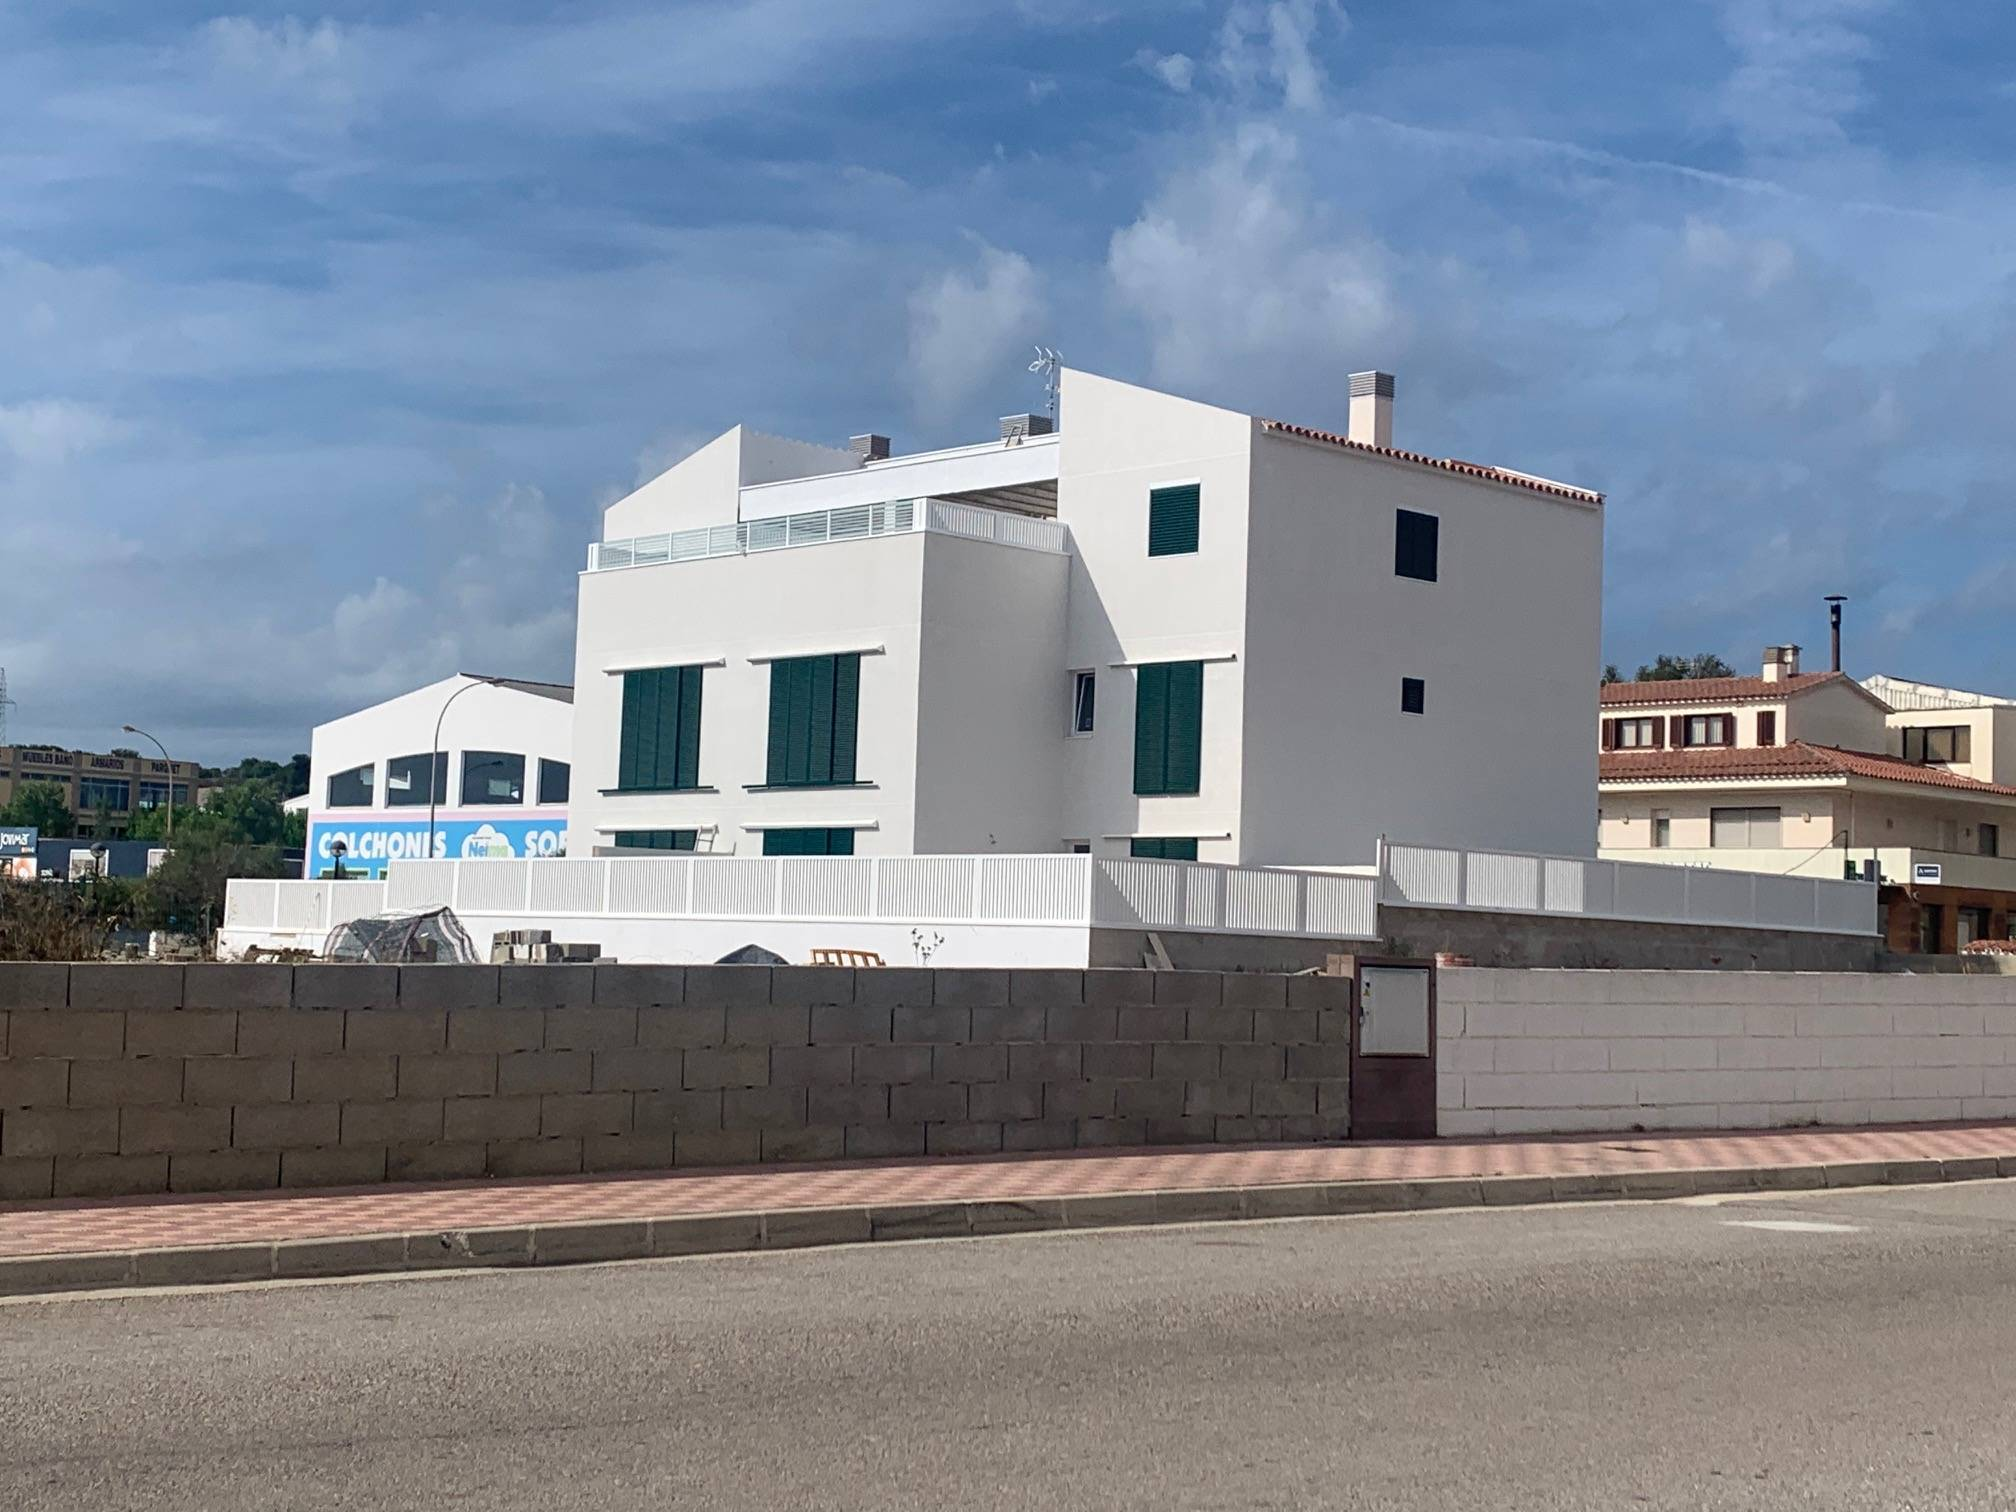 Promotion - Exclusive. New promotion of flats in Alaior, Menorca